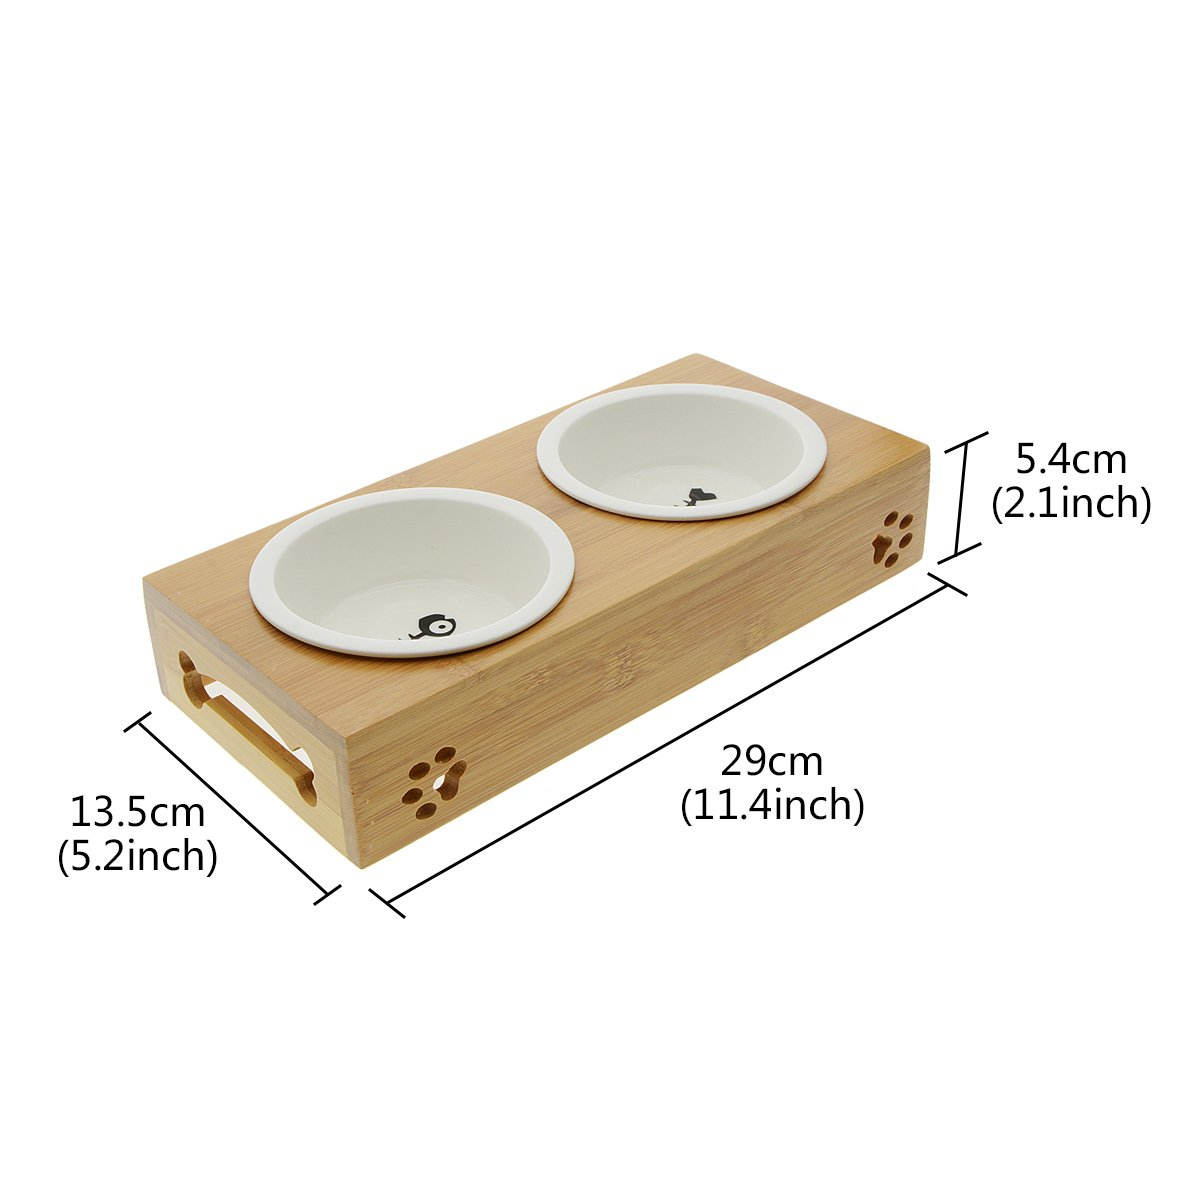 Saim Small Dogs and Cats Bowls Elevated Pet Feeder by Saim (Image #2)